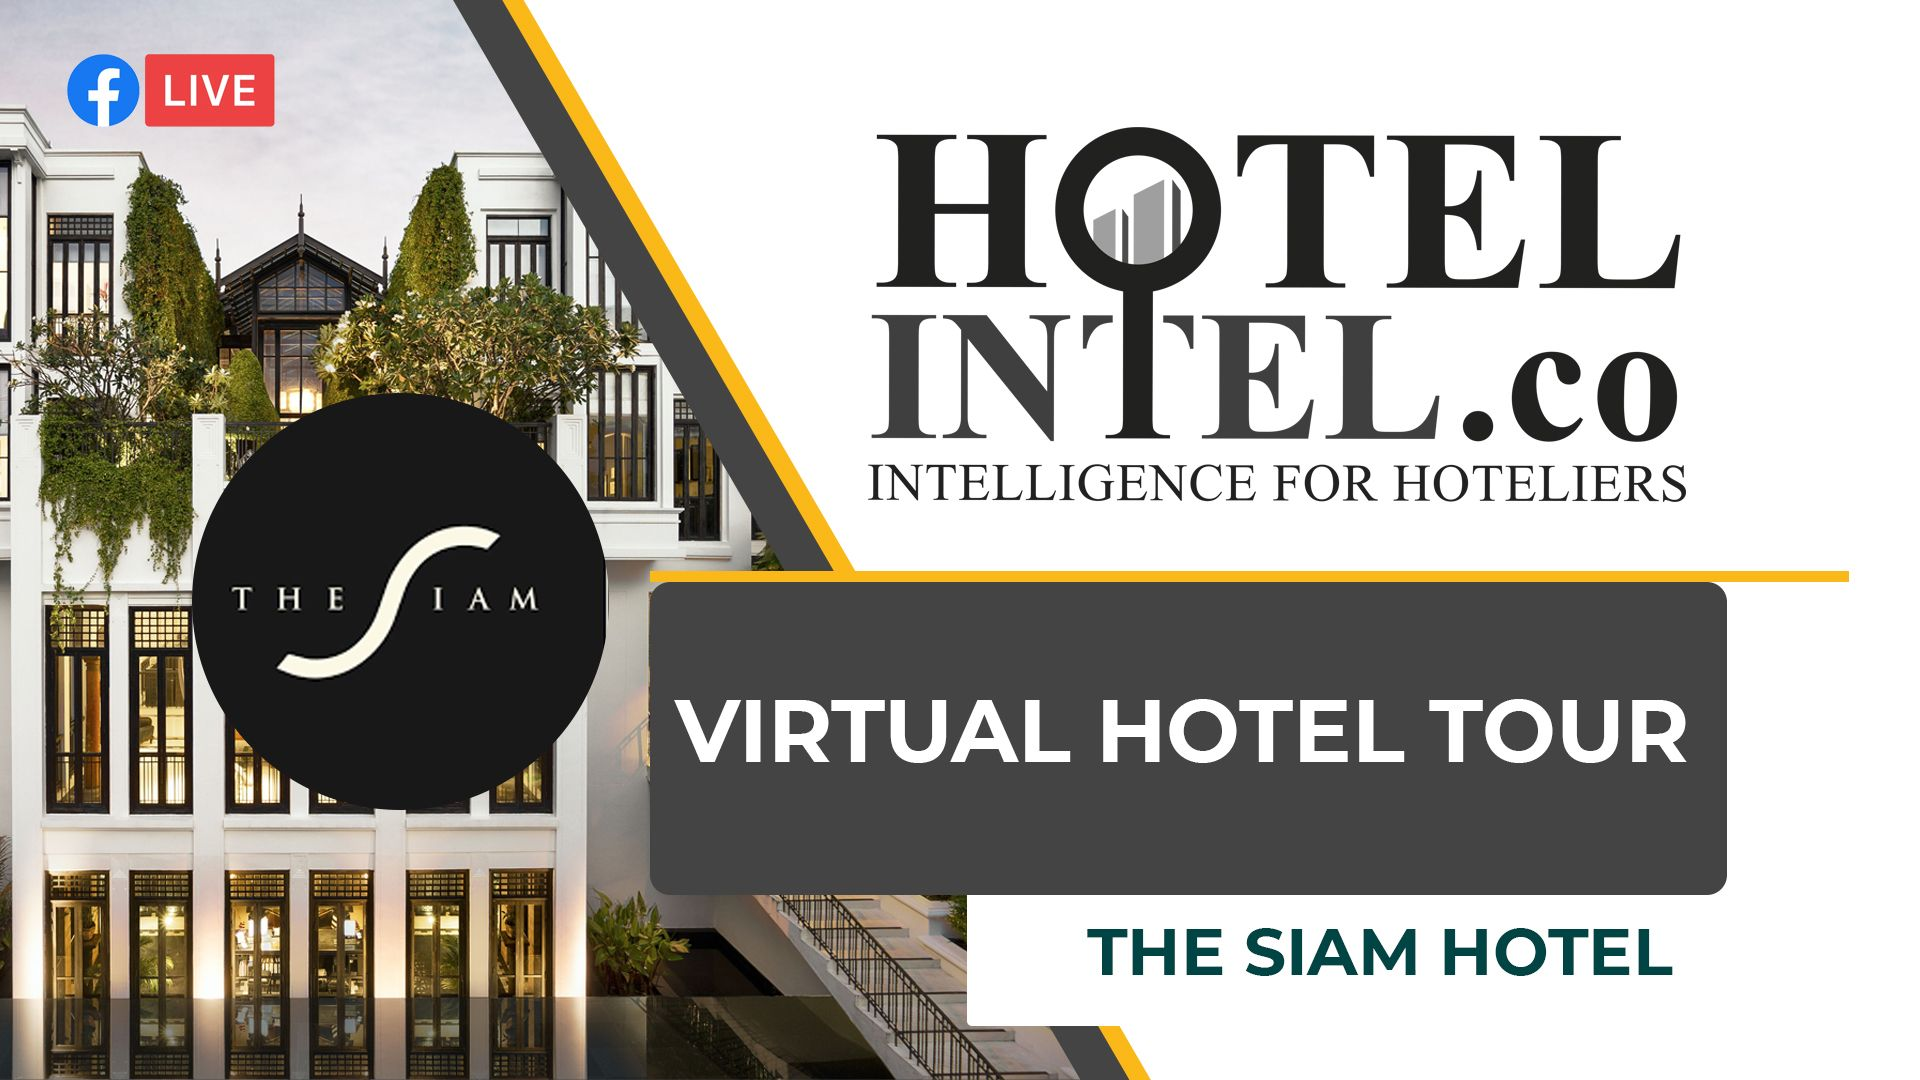 The Siam - Hotelintel.co Virtual Luxury Hotel Tour